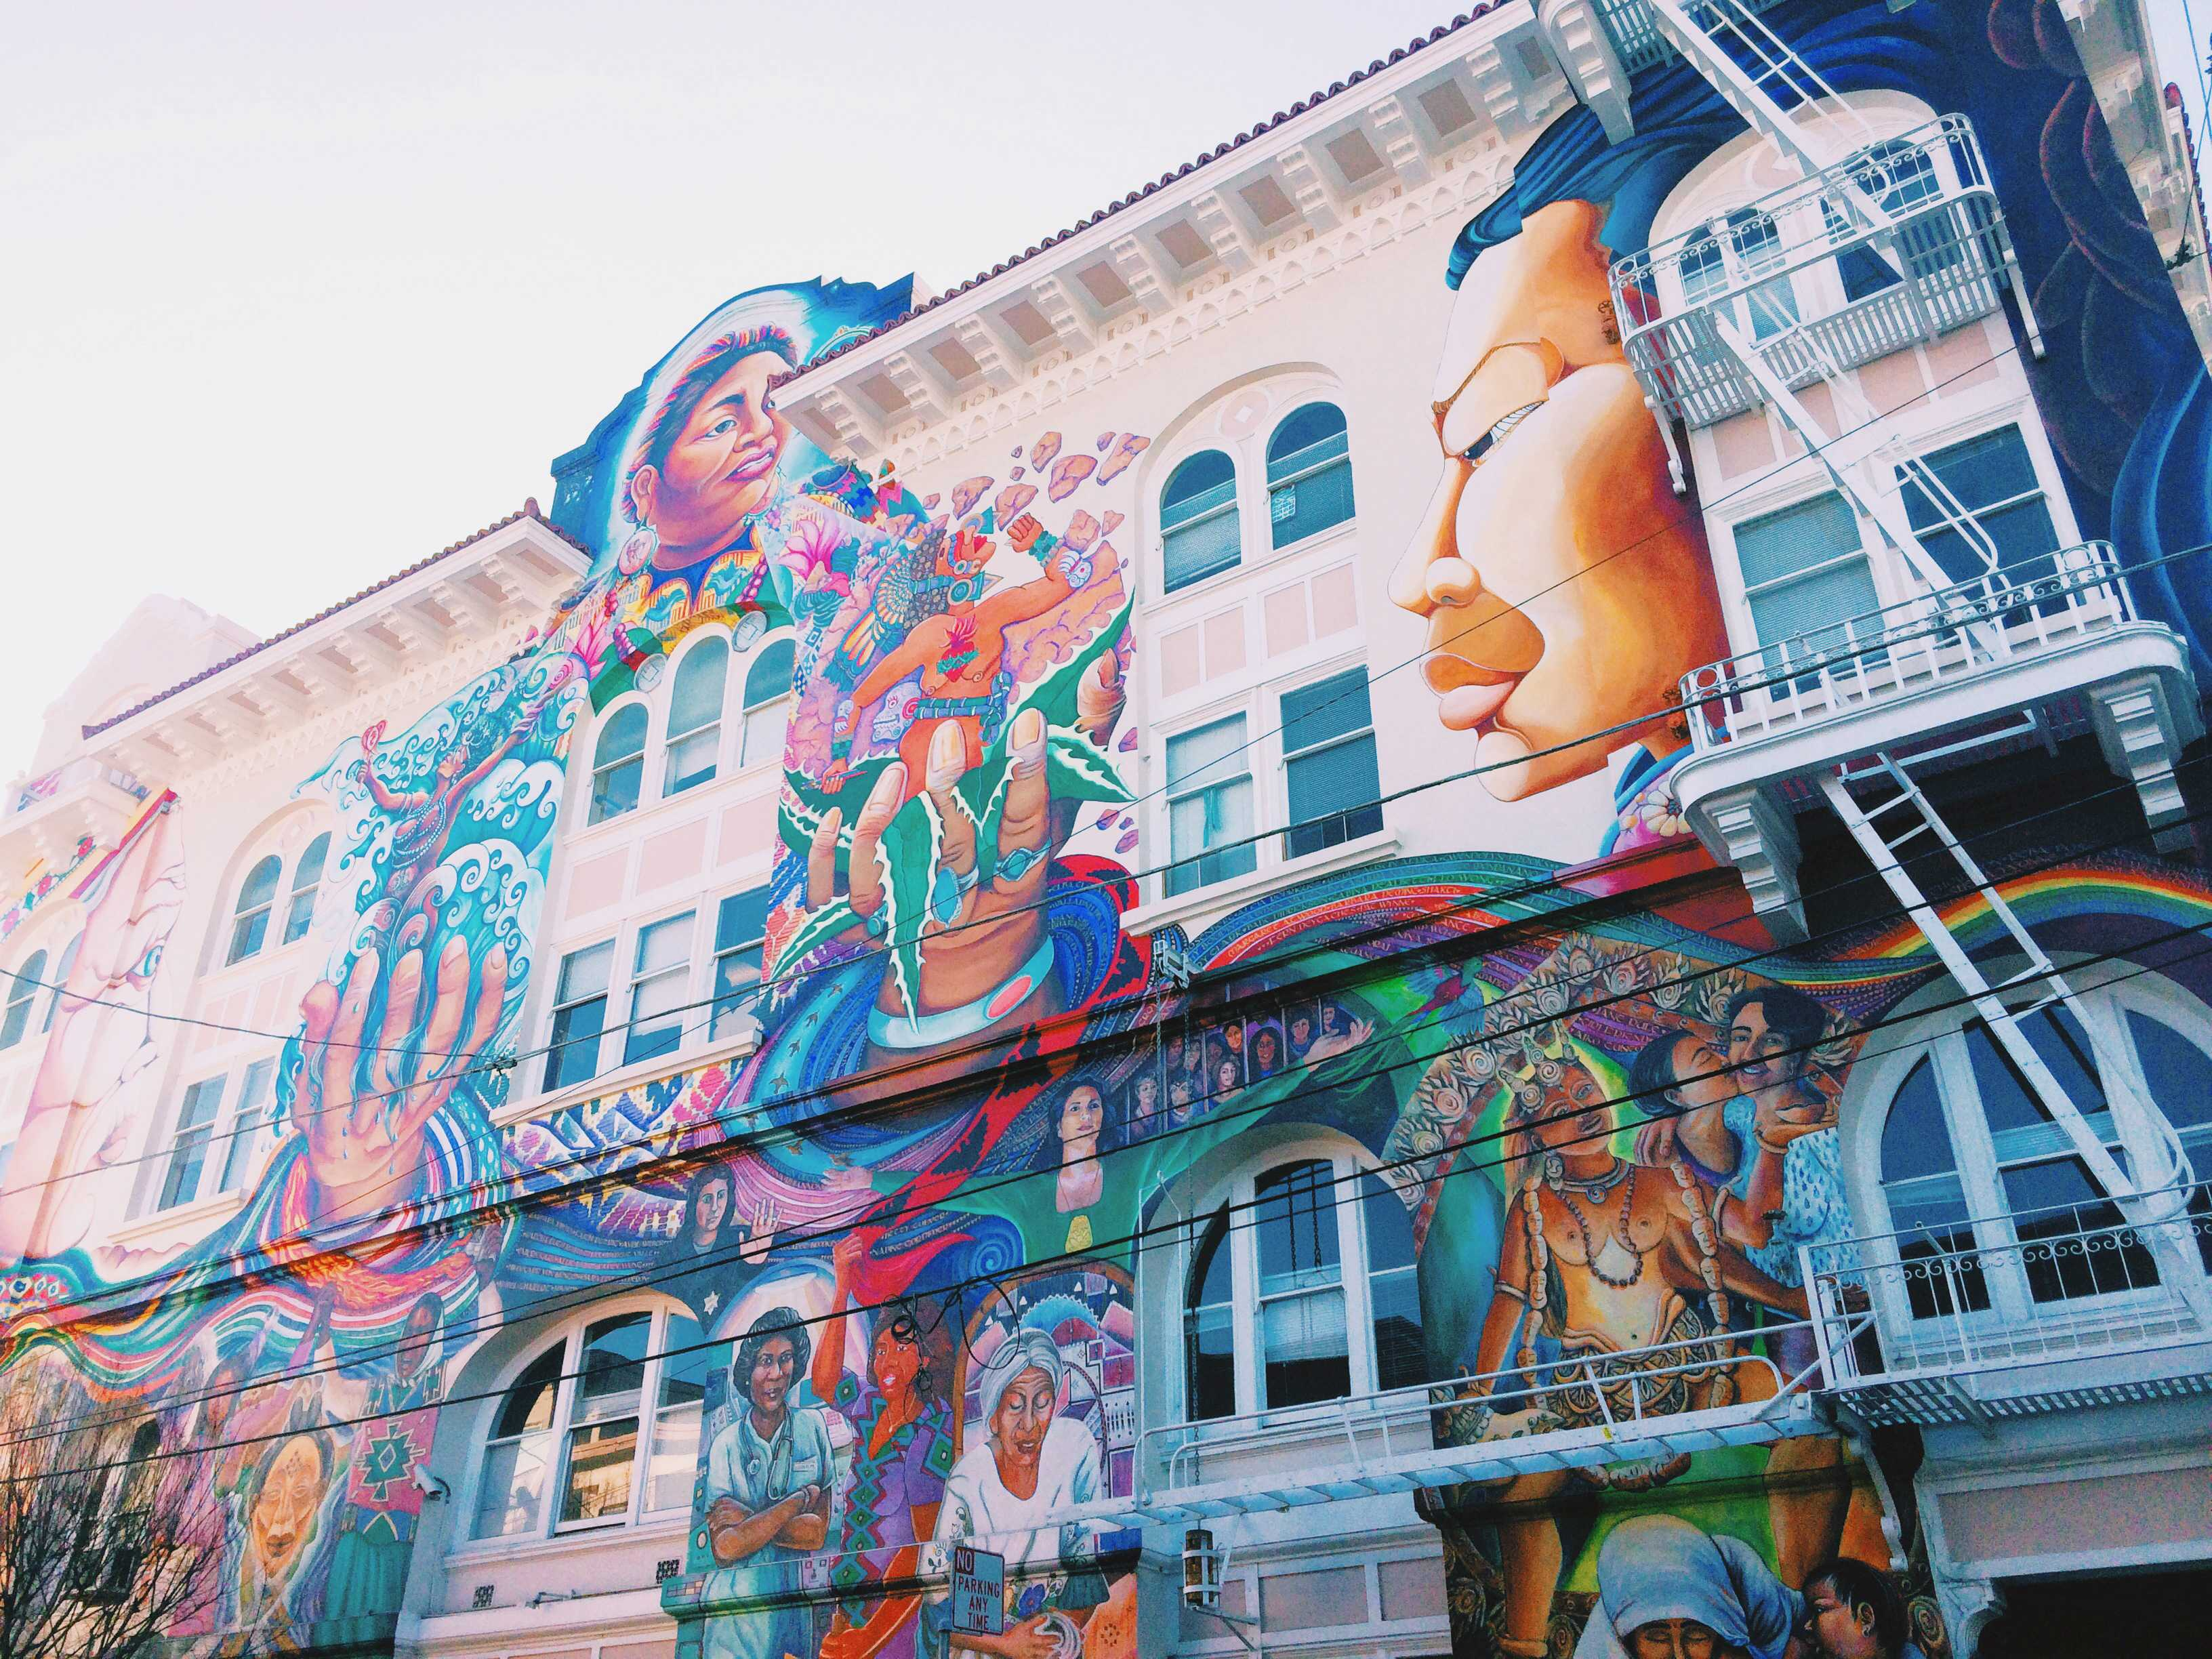 A colorful mural on the side of a building in The Mission.  Photo by Joe Huber'15.